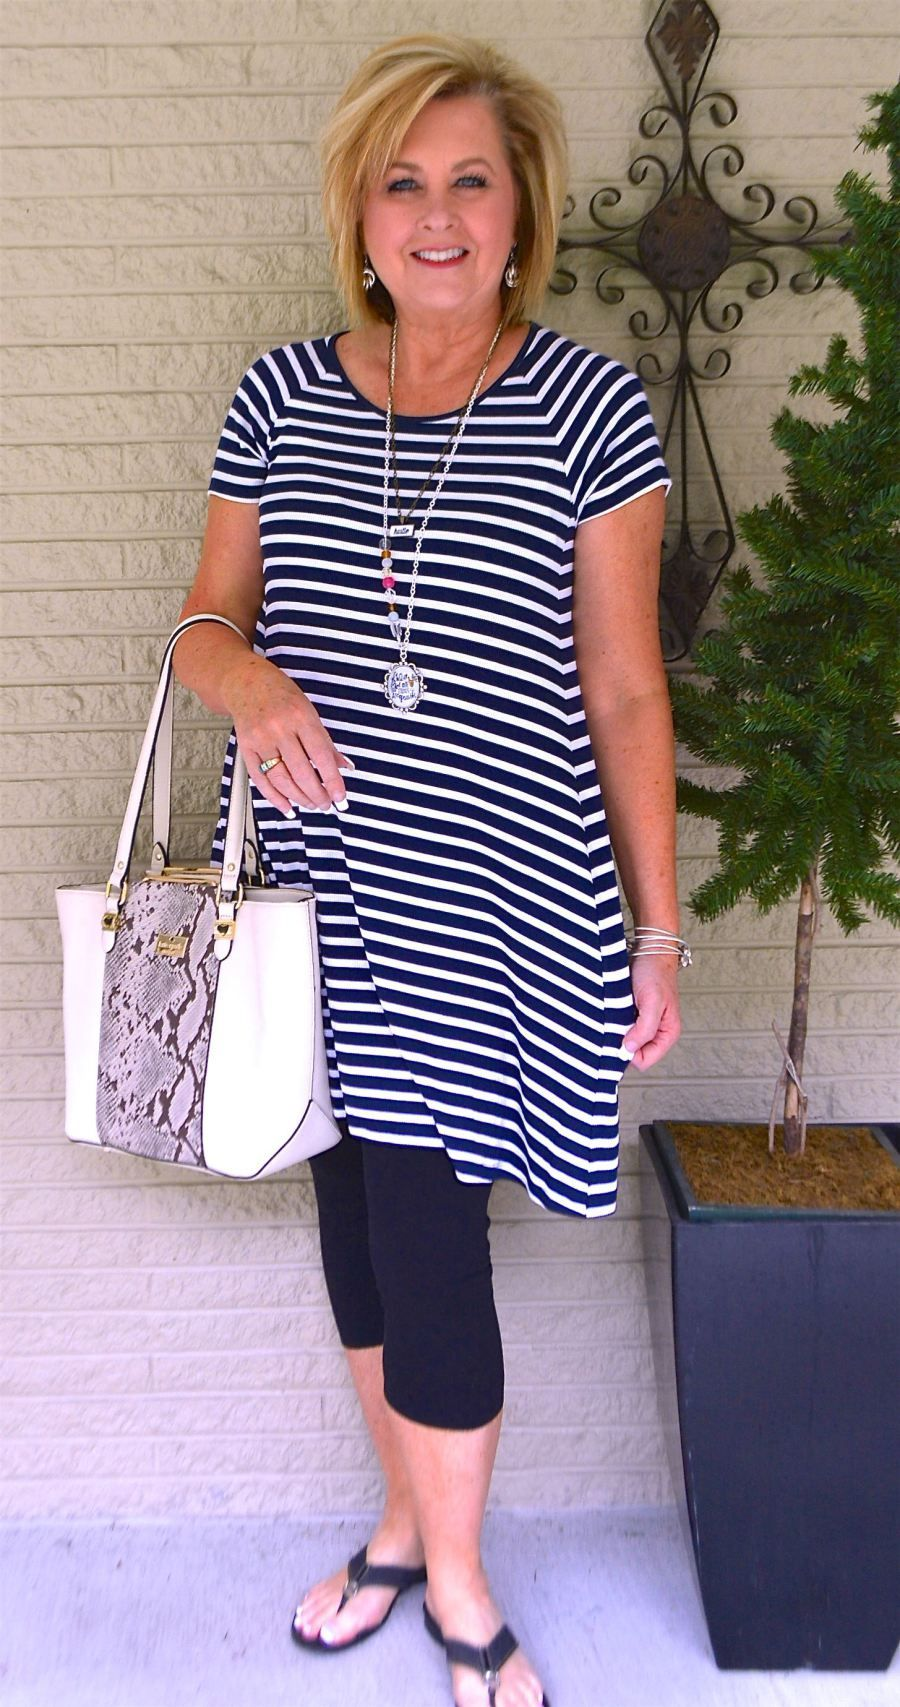 Trends For Spring Summer Clothes For Real Women Over 40: NAVY AND BLACK